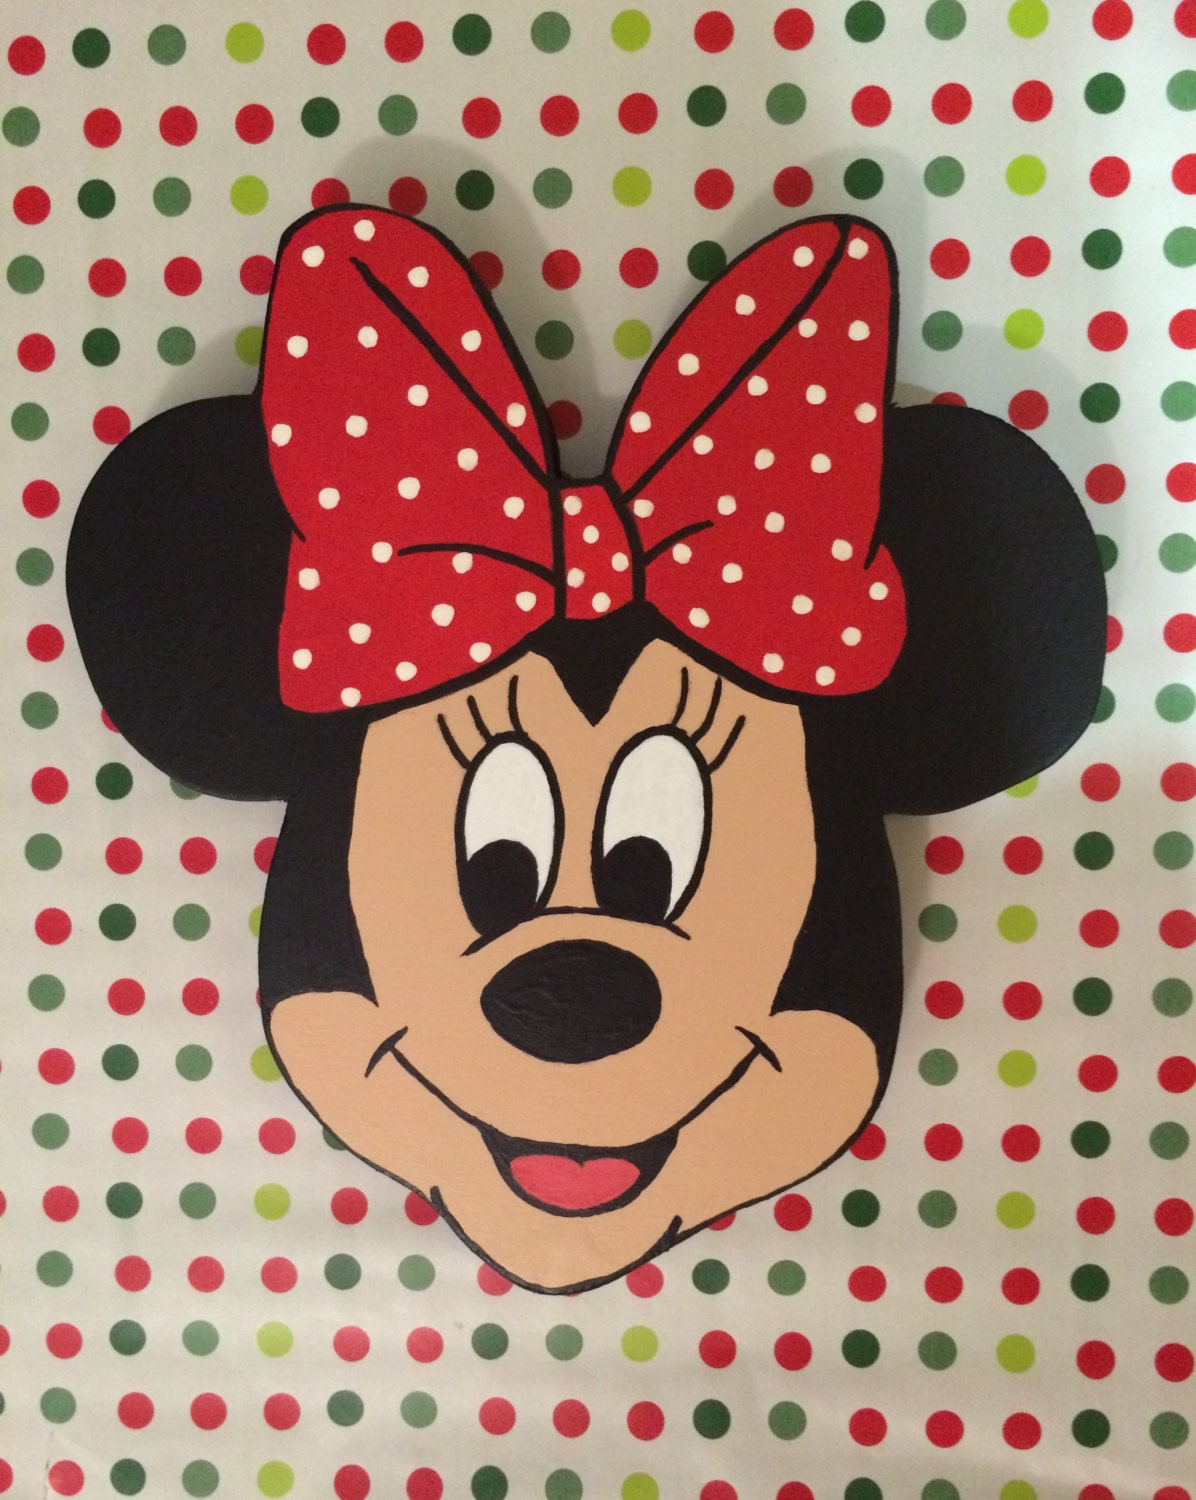 Minnie Mouse Wall Decor By Ljwooddesigns On Etsy